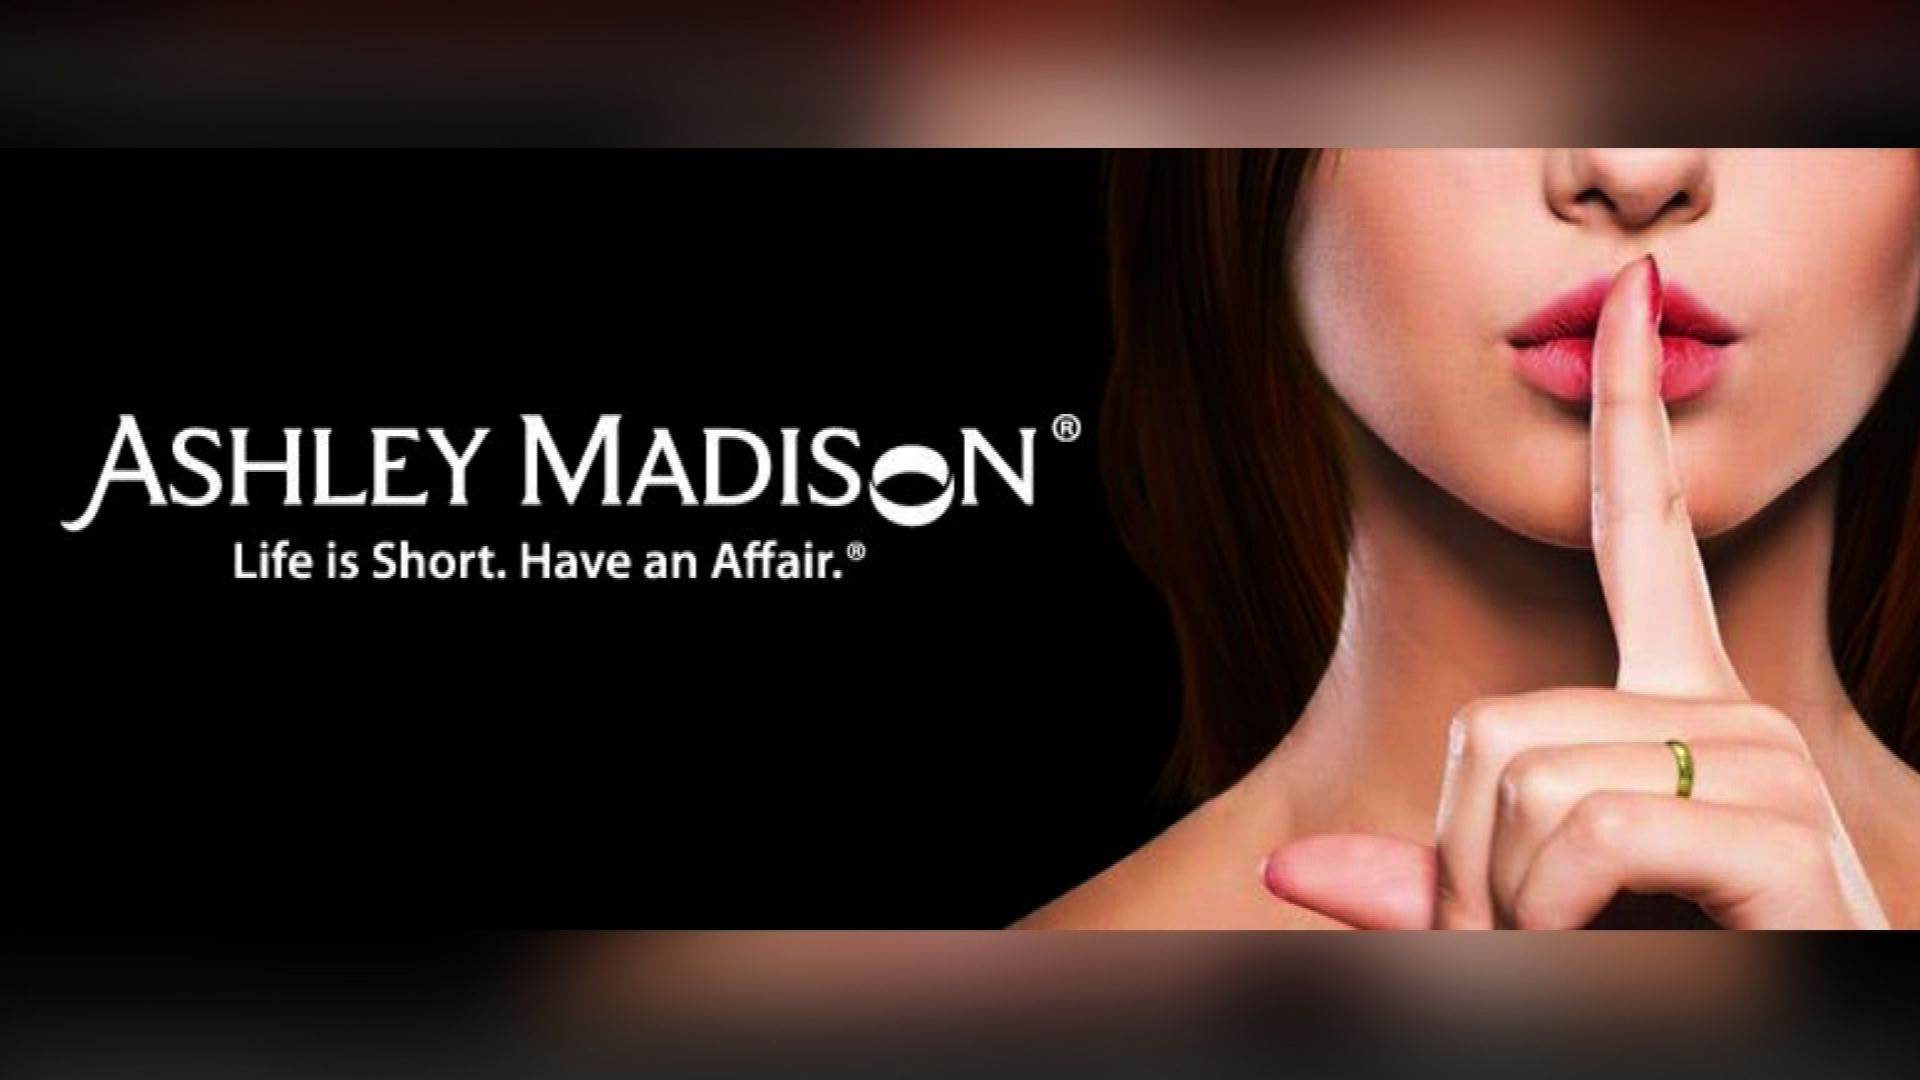 Video: Hackers to adultery site Ashley Madison: Shut down or be exposed